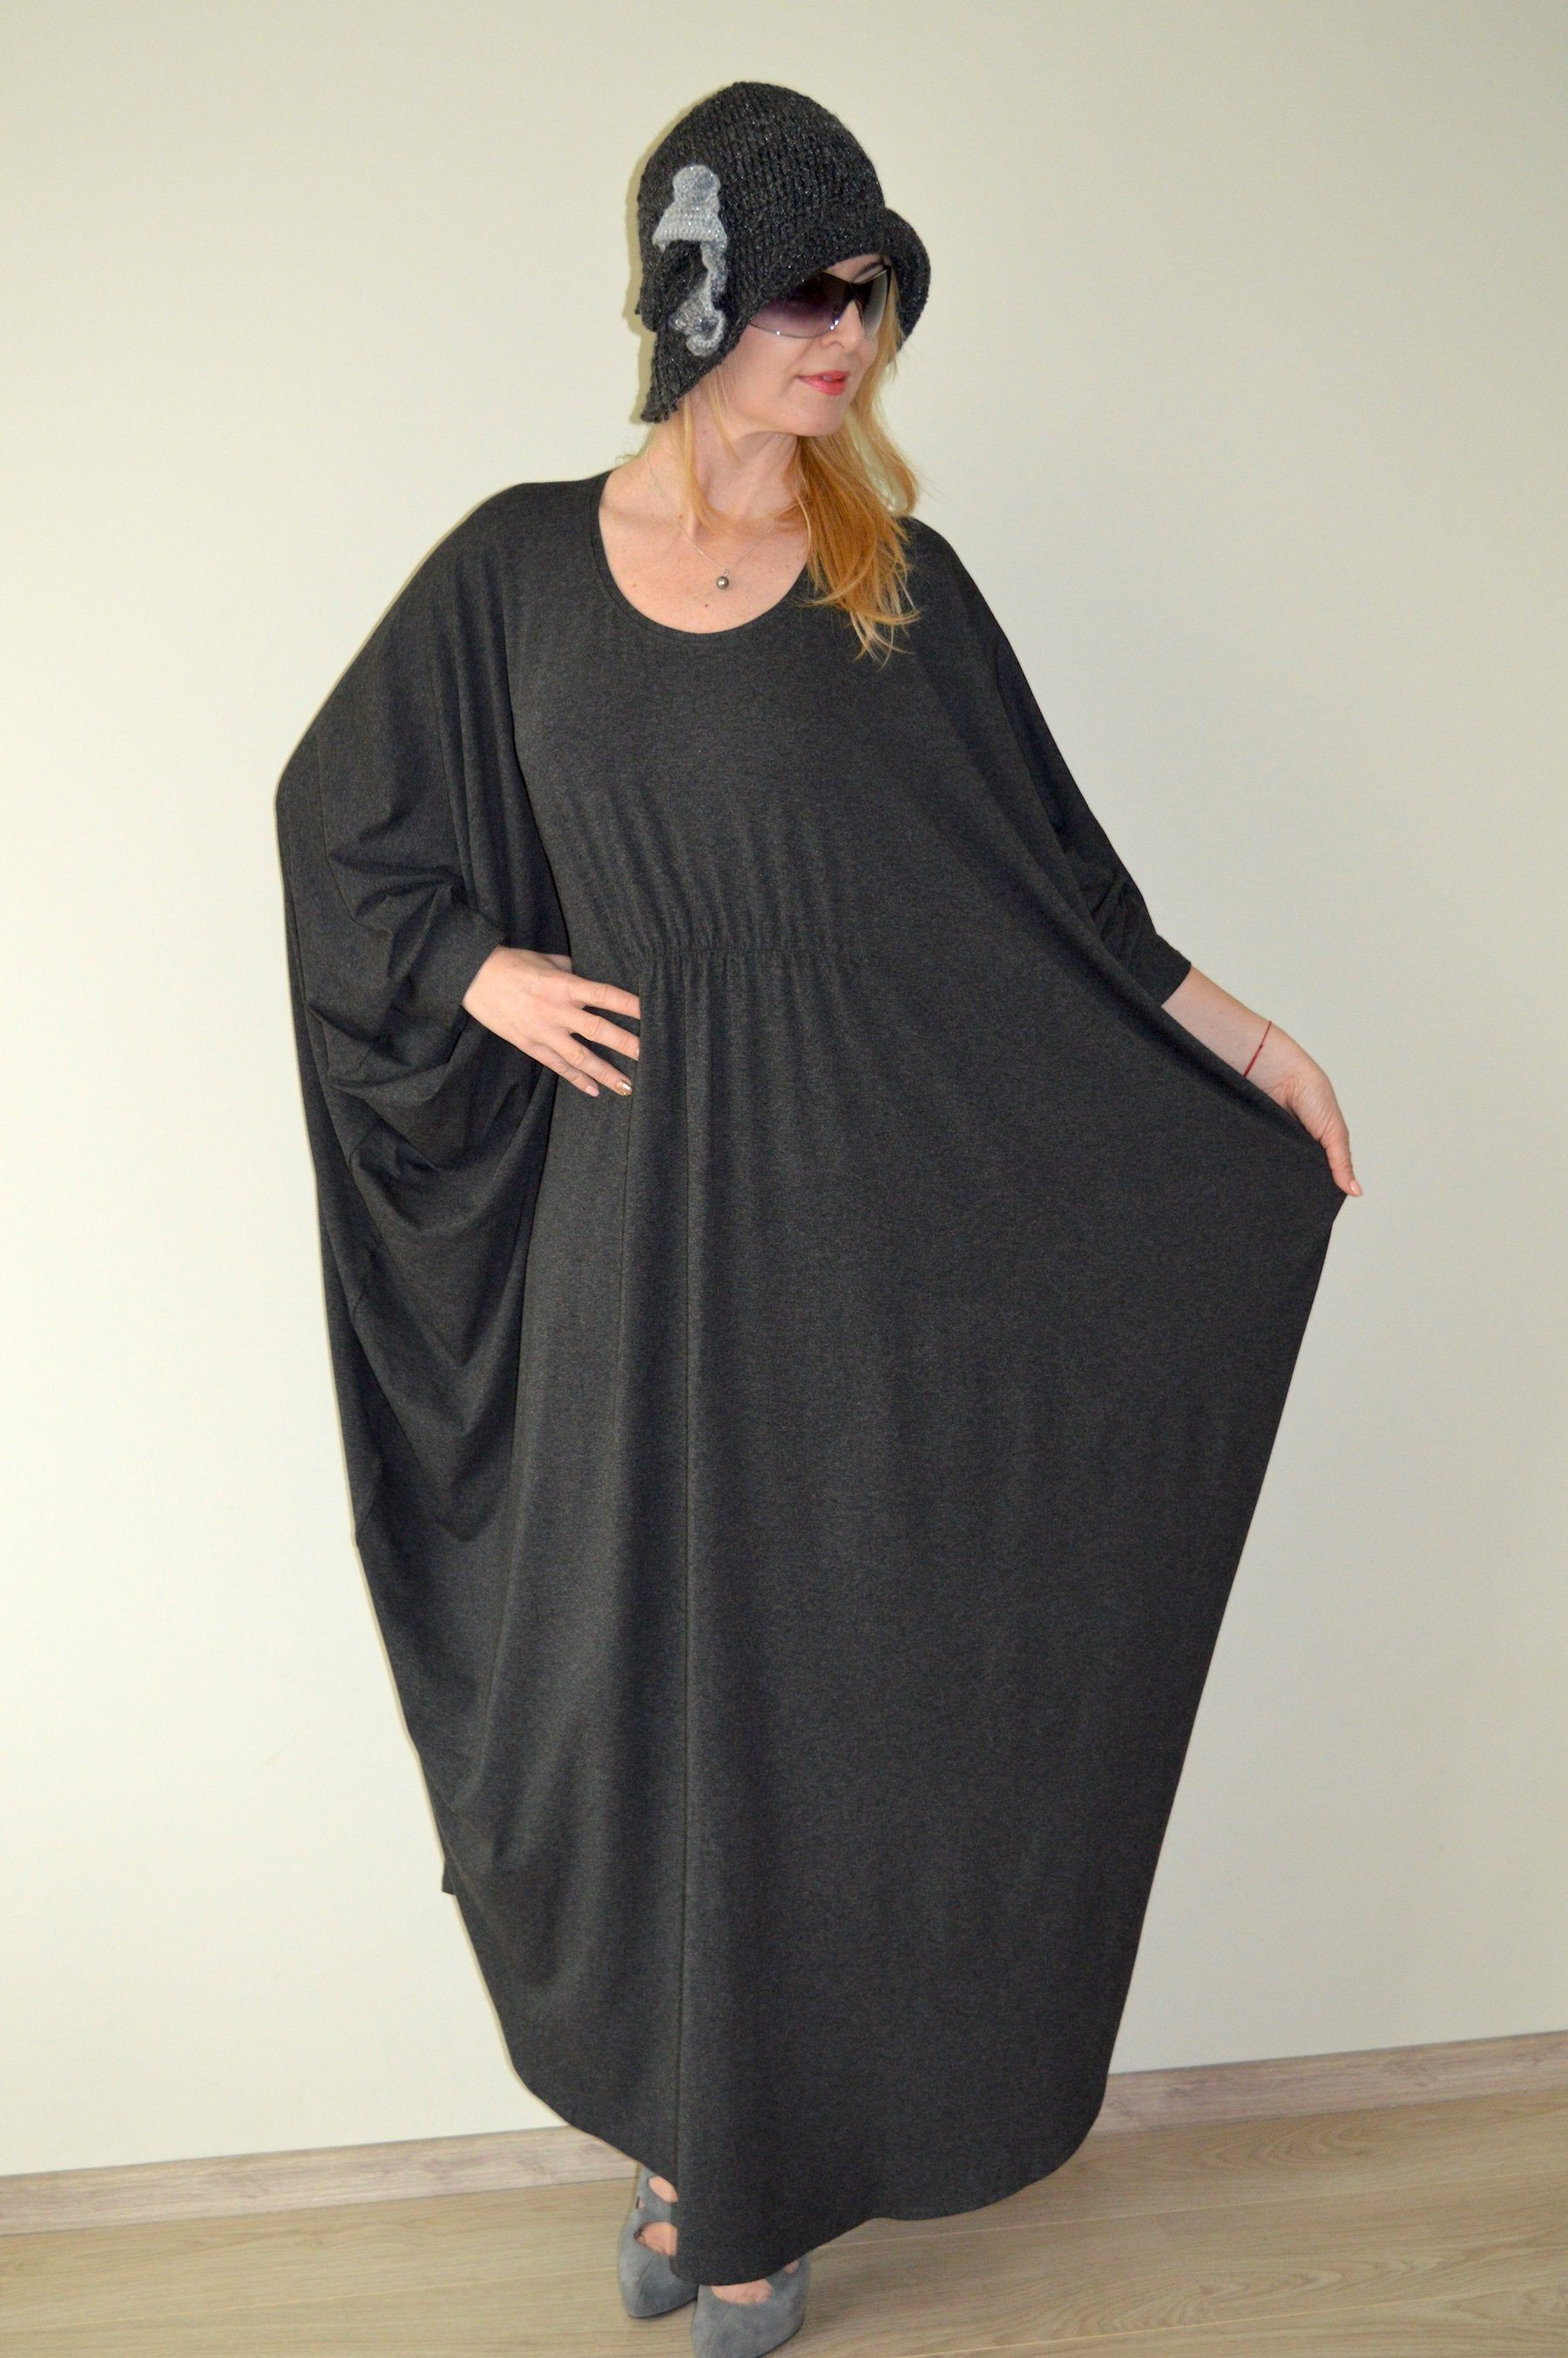 Abaya Dress/ Elegant Kaftan/ Maxi Dress/ Caftan/ Party Dress/ Plus Size Dress/ Long Dress, Casual Oversized Dress #area51partyoutfit